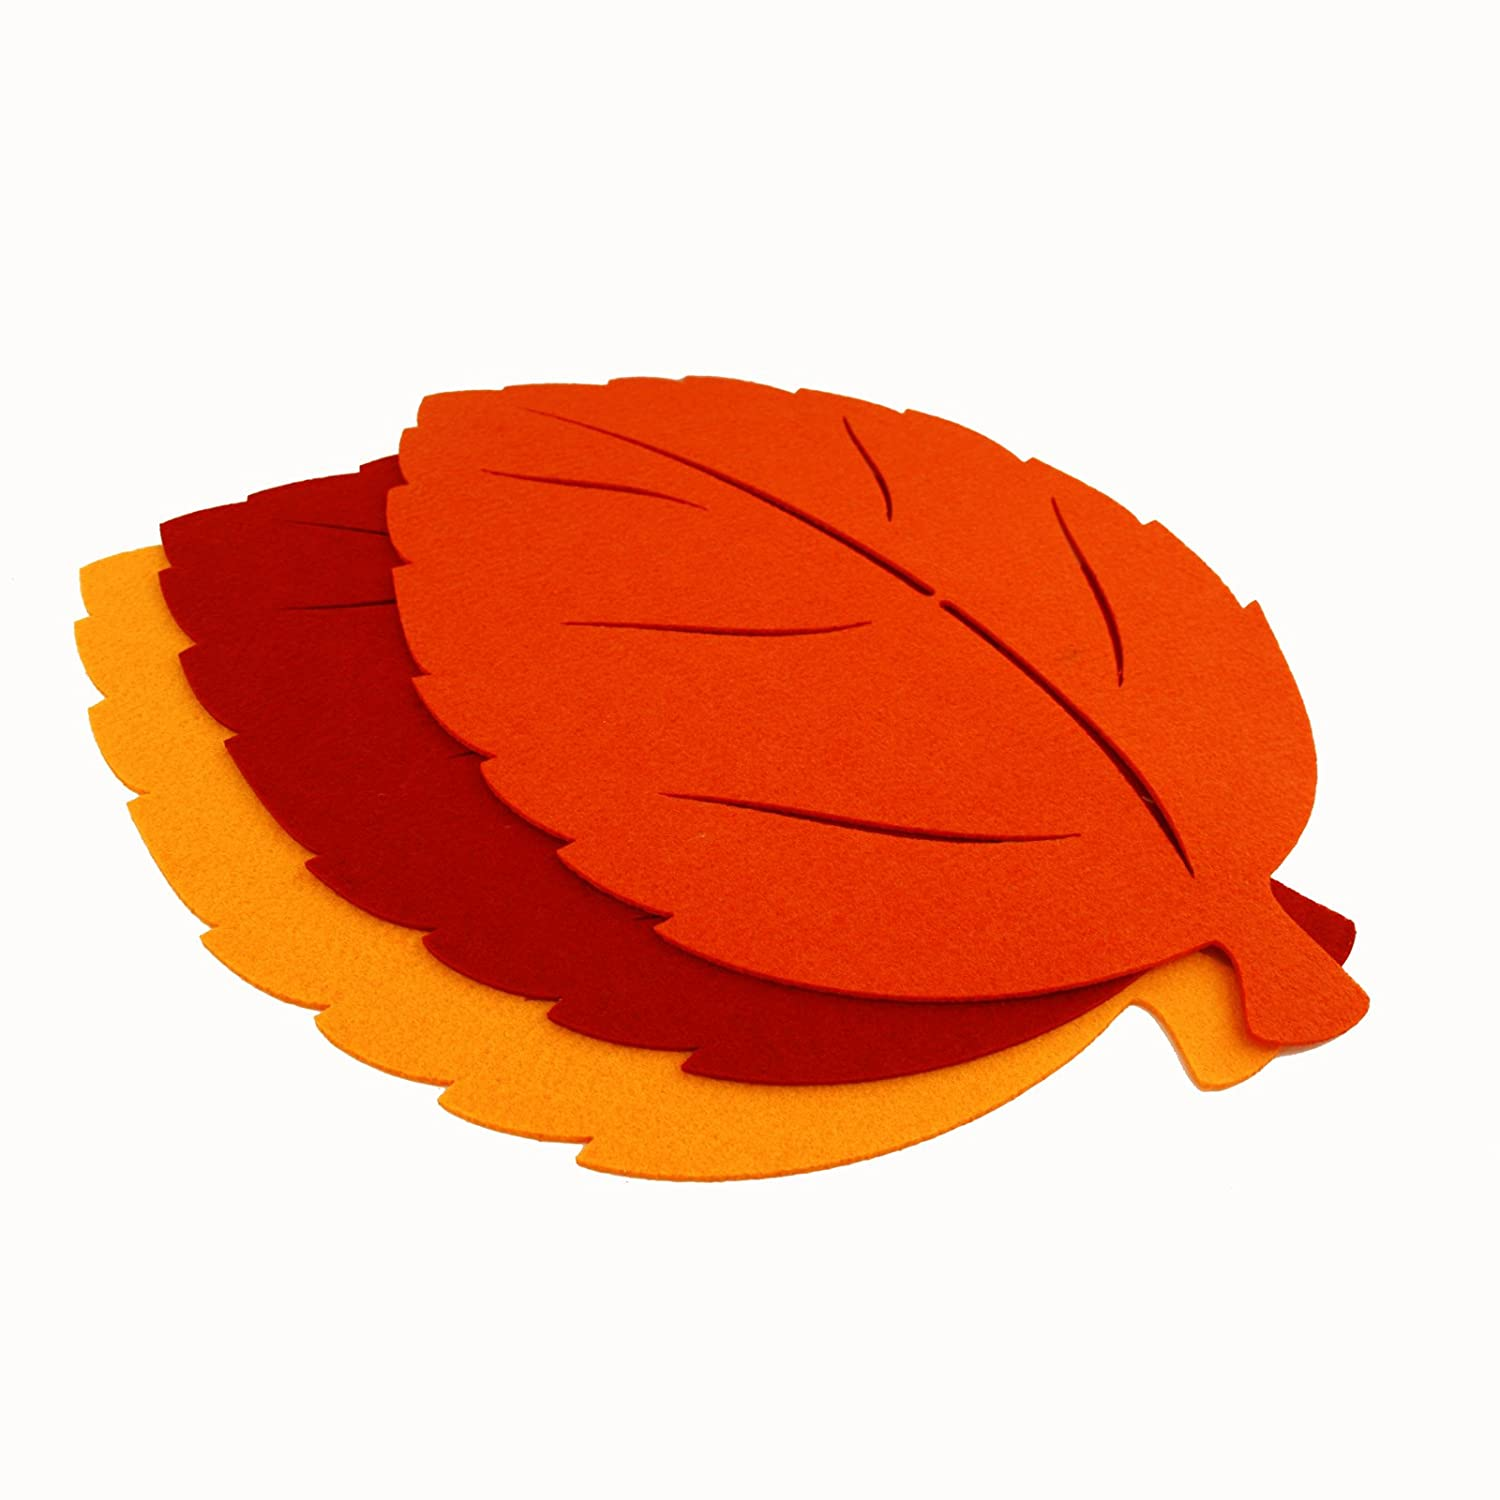 FloristryWarehouse Felt Large Fall Leaves for Craft Red Orange Gold Pack of 3